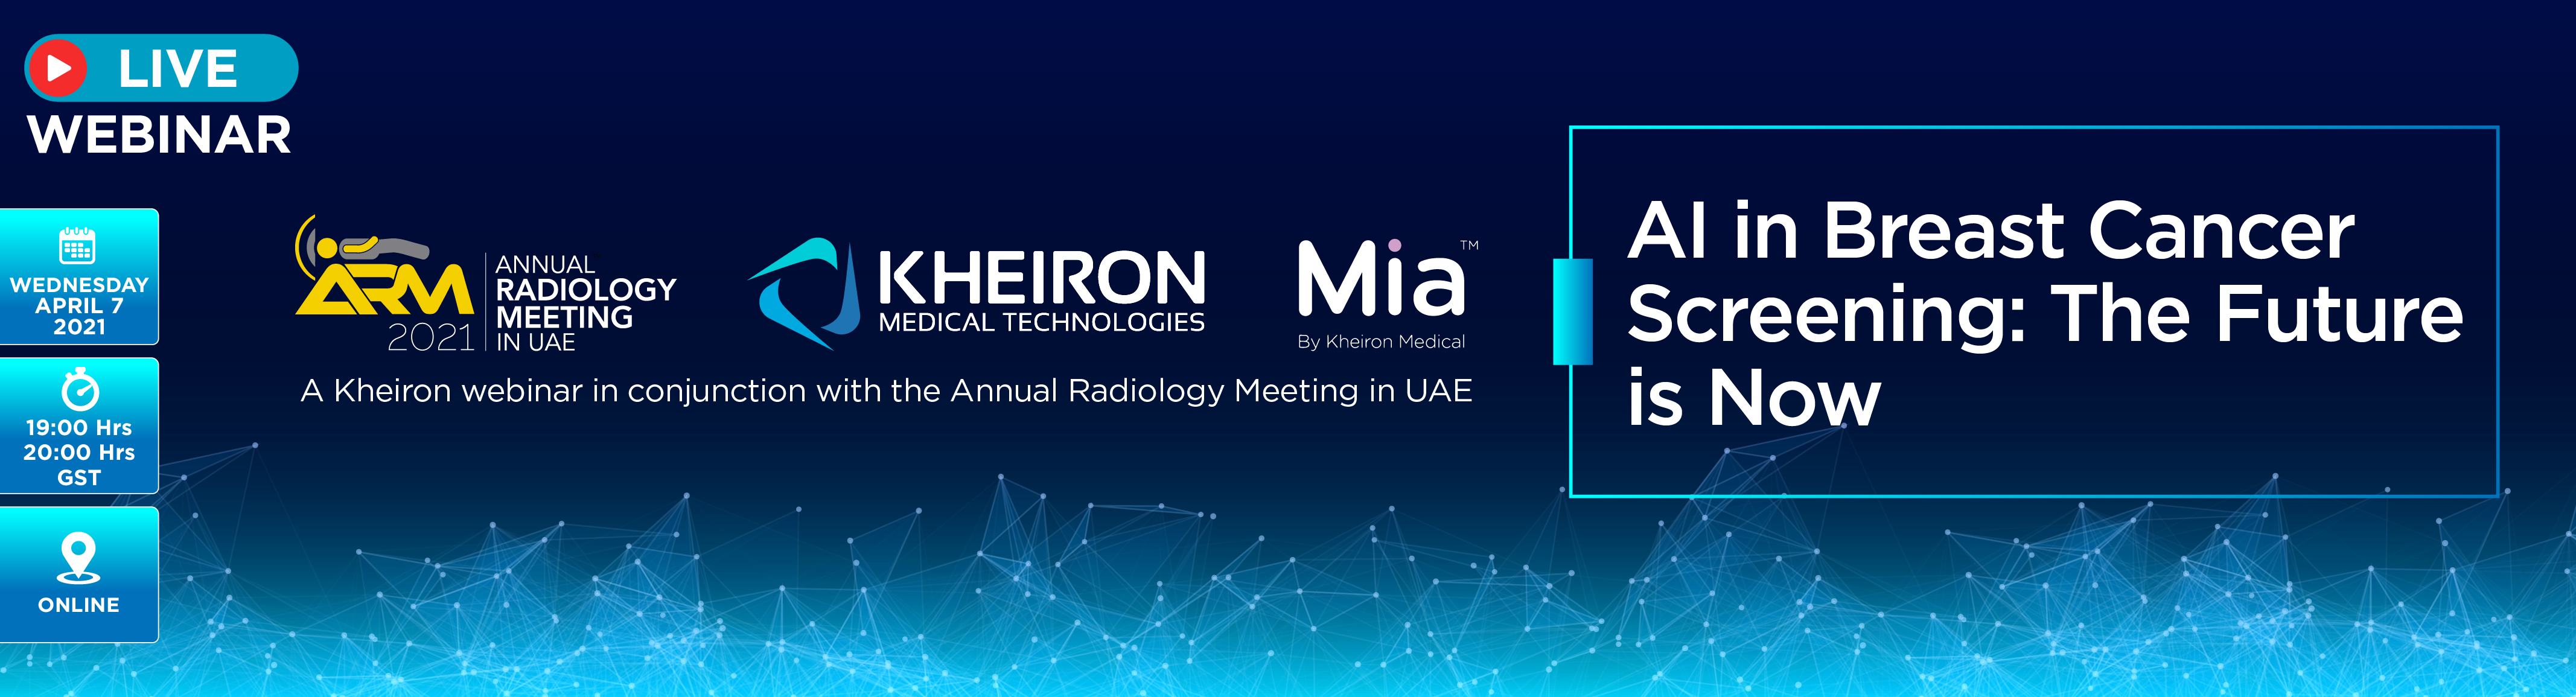 Kheiron webinar - AI in Breast Cancer Screening: The Future is Now - April 7, 19:00-20:00